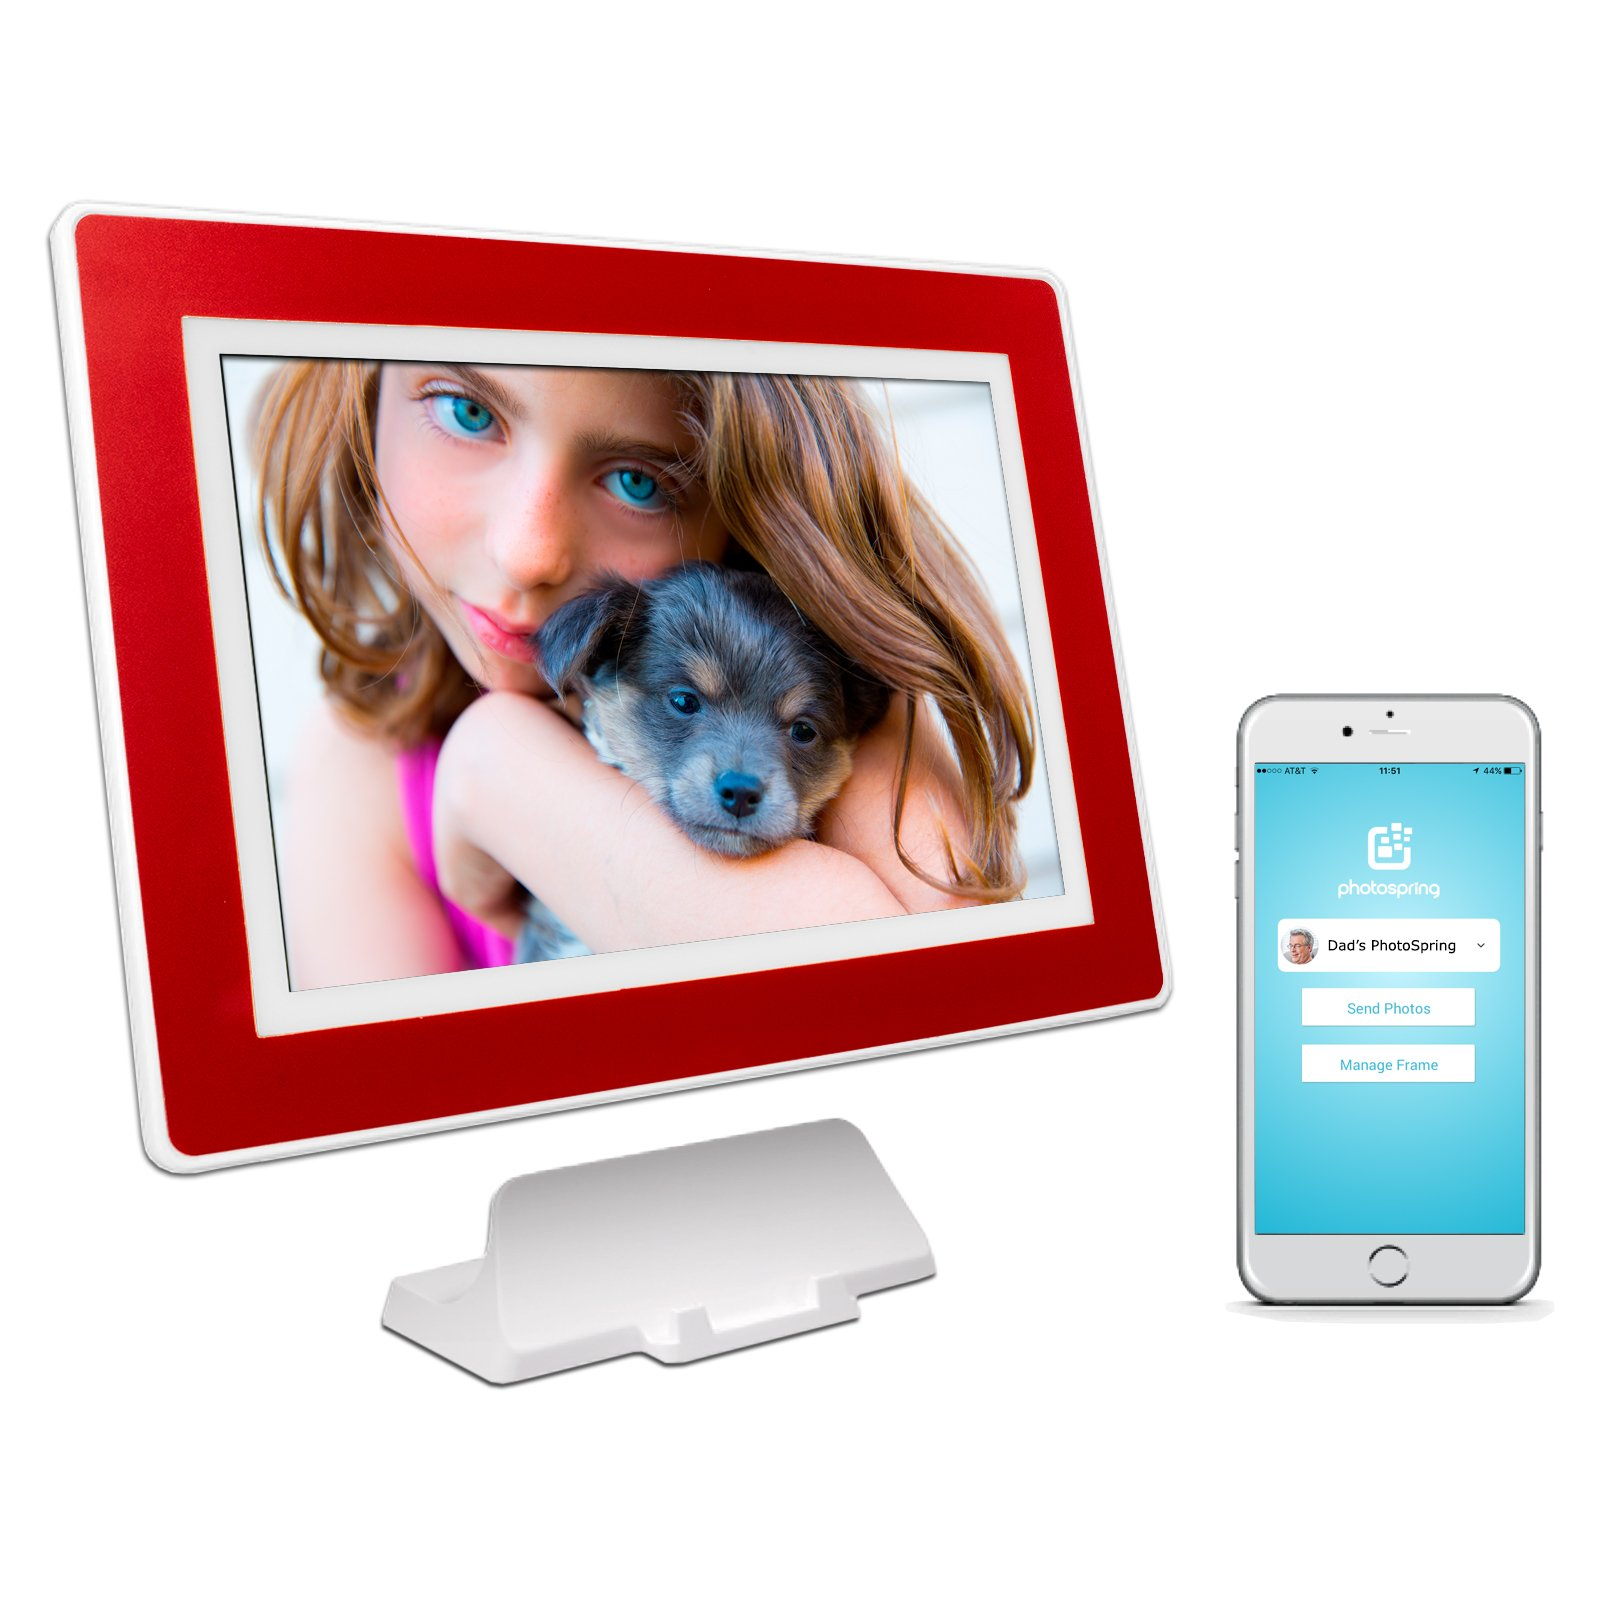 PhotoSpring (32GB) 10-inch WiFi Cloud Digital Picture Frame - Battery, Touch-Screen, Plays Video and Photo Slideshows, HD IPS Display, iPhone & Android app (White/Maroon Red Mat - 32,000 Photos) by PhotoSpring